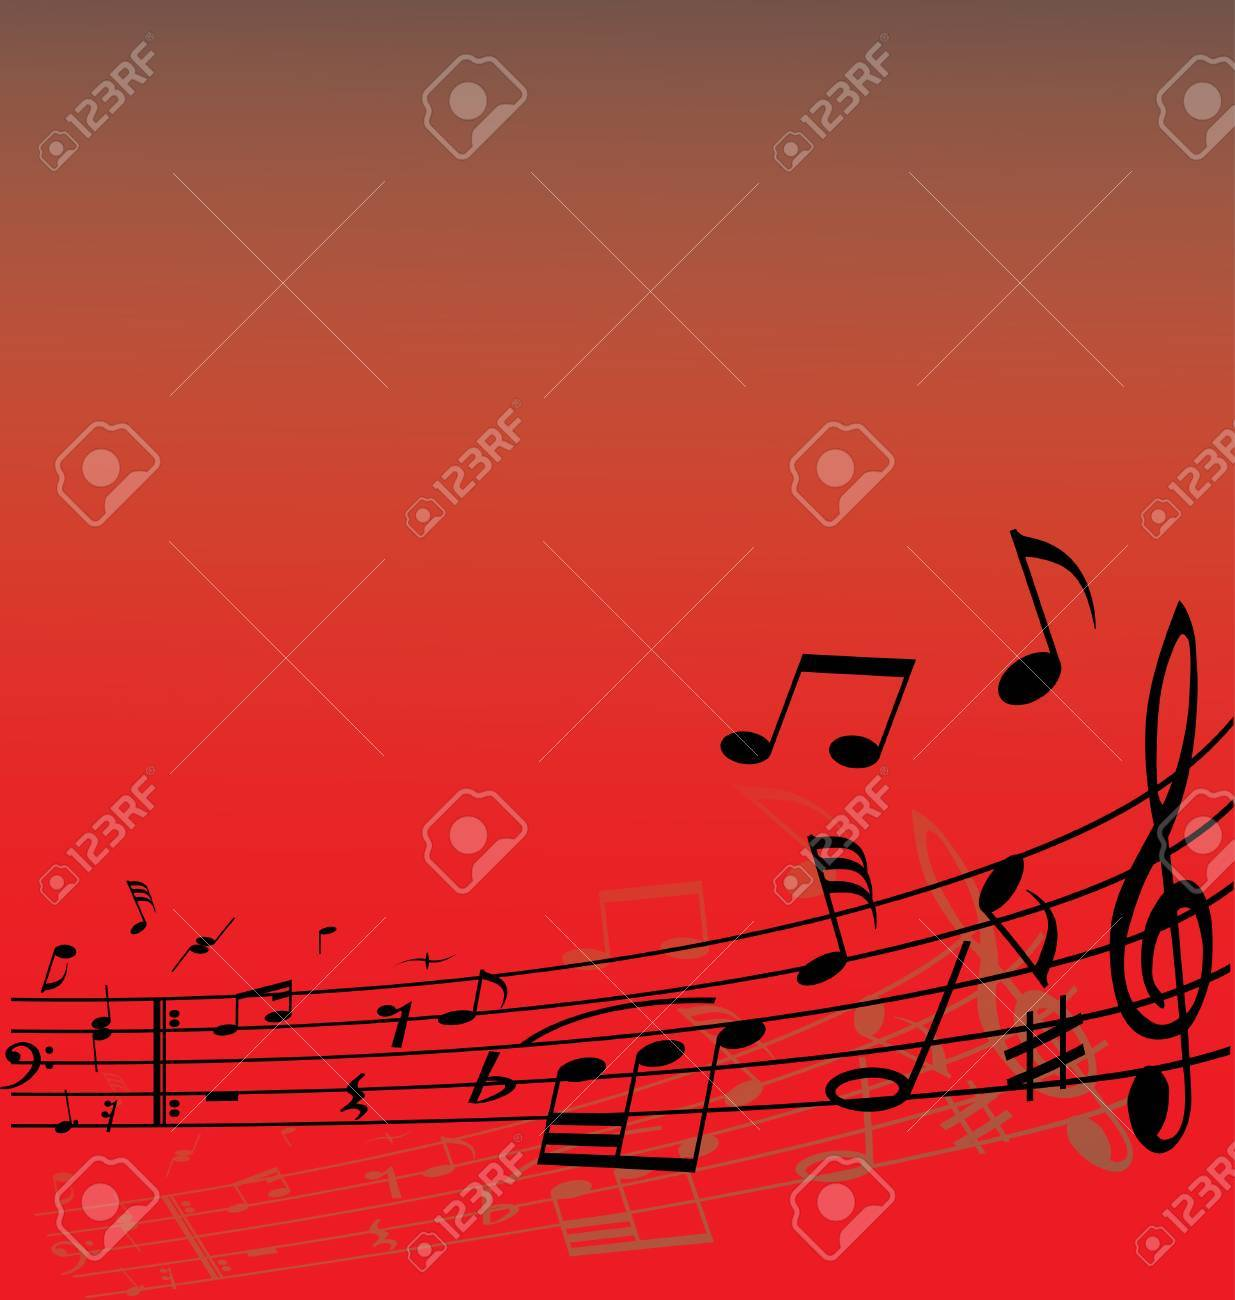 Abstract music background with different notes and lines Stock Vector - 2996156